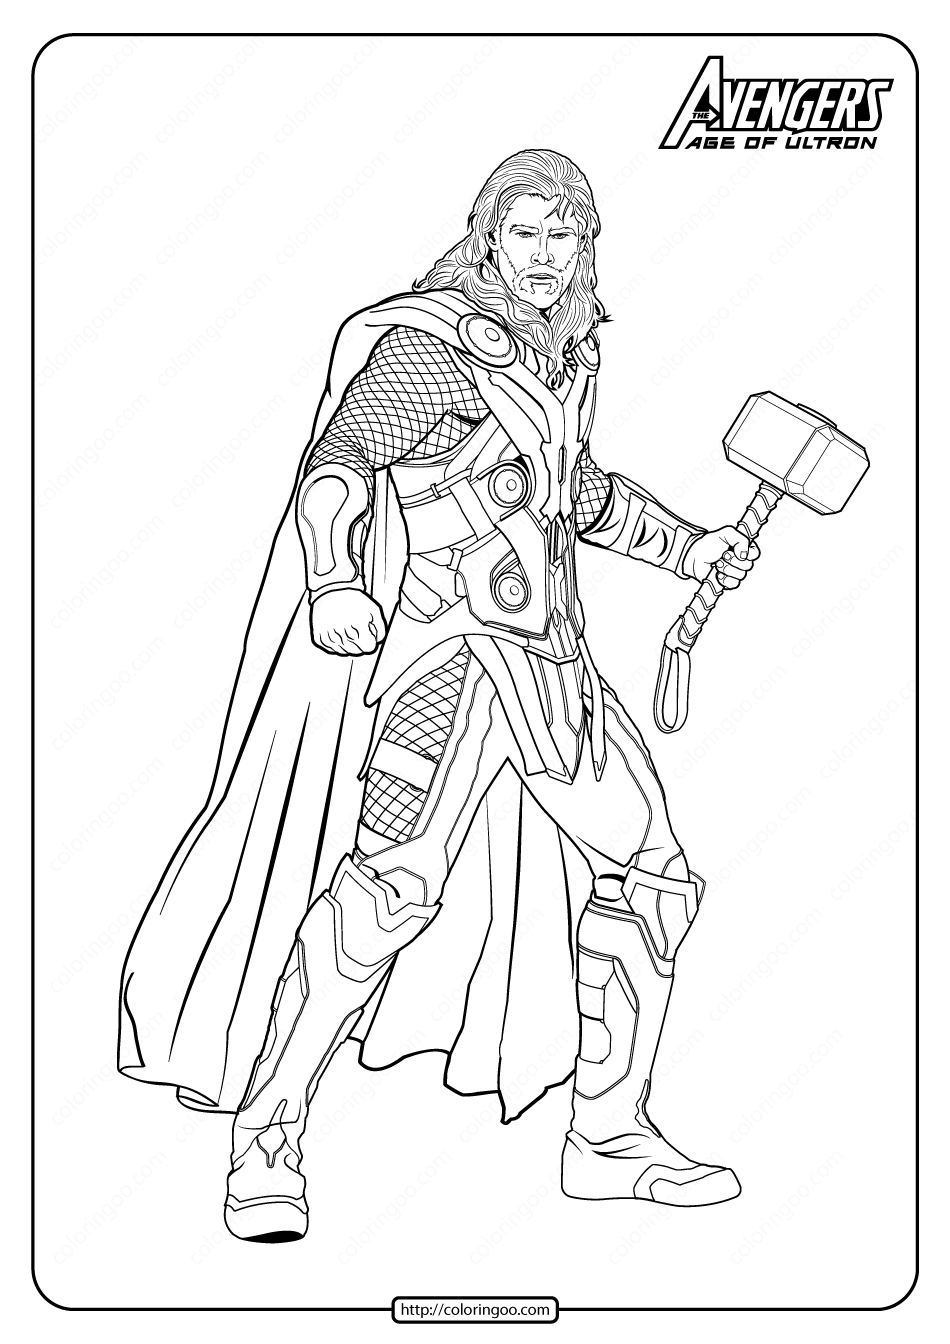 Marvel The Avengers Thor Pdf Coloring Pages In 2020 Superhero Coloring Superhero Coloring Pages Avengers Drawings